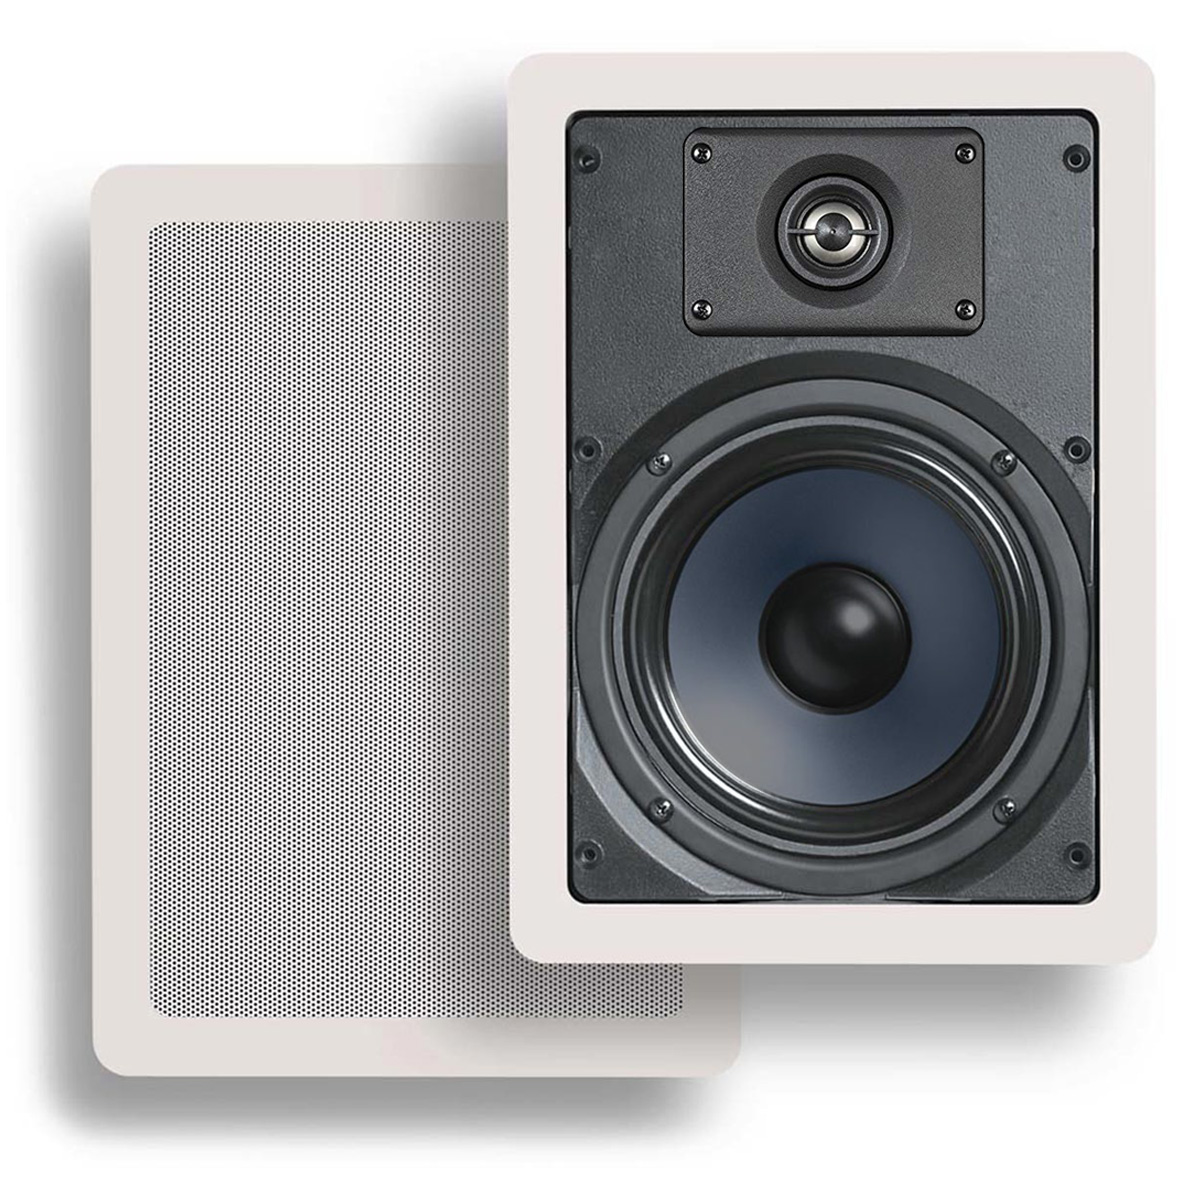 IW85 8″ 2-Way In-Wall Speakers (Pair)